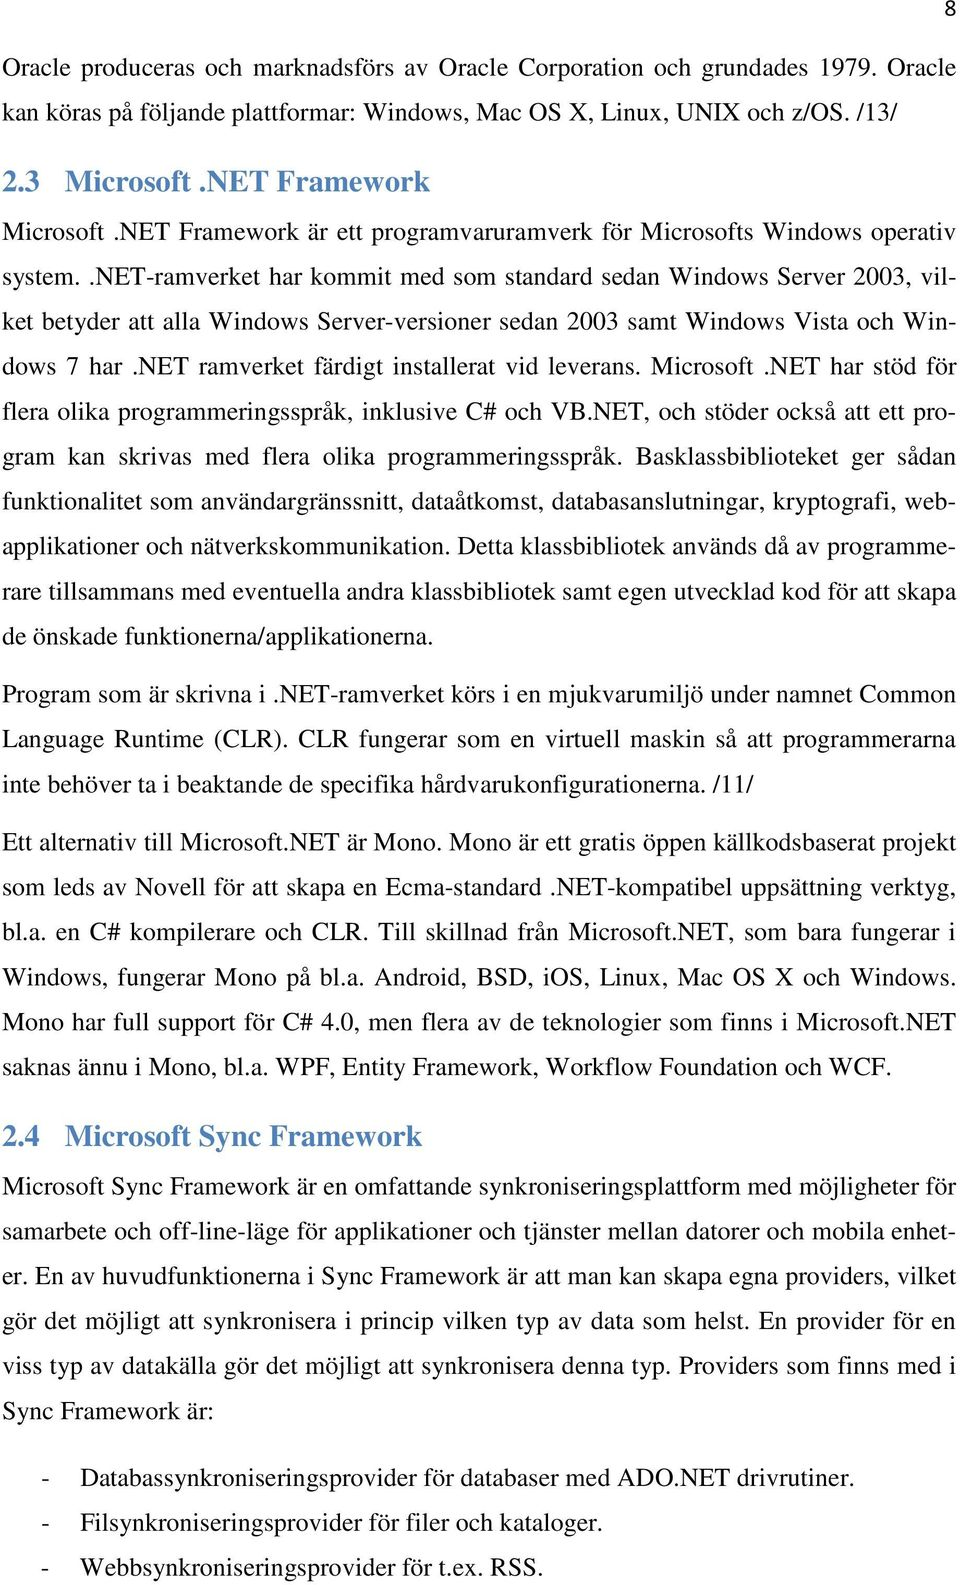 .net-ramverket har kommit med som standard sedan Windows Server 2003, vilket betyder att alla Windows Server-versioner sedan 2003 samt Windows Vista och Windows 7 har.